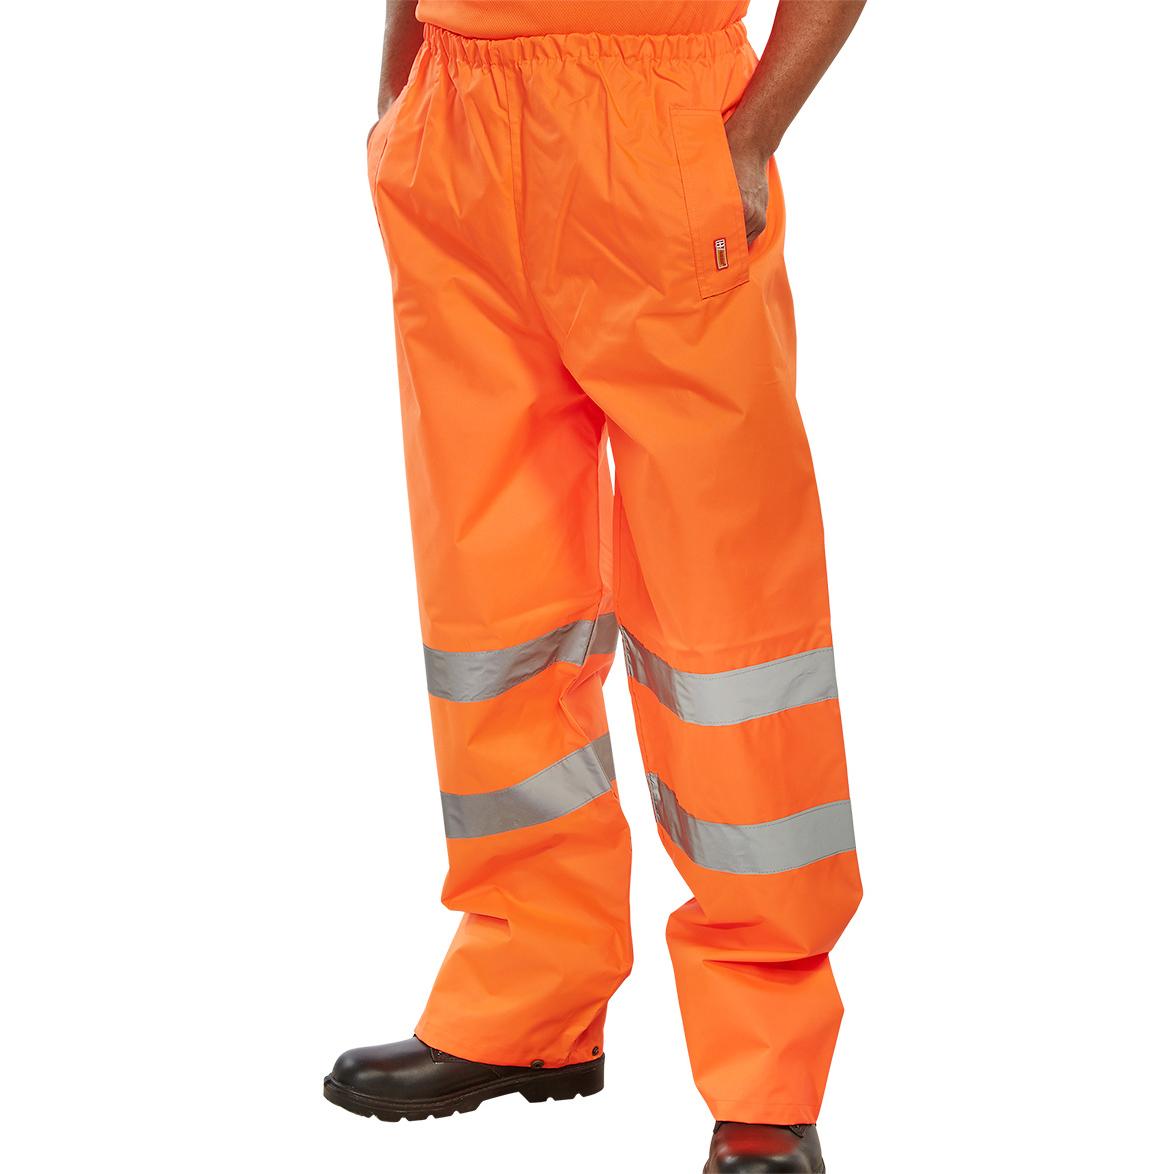 BSeen Traffic Trousers Hi-Vis Reflective Tape Small Orange Ref TENORS Up to 3 Day Leadtime